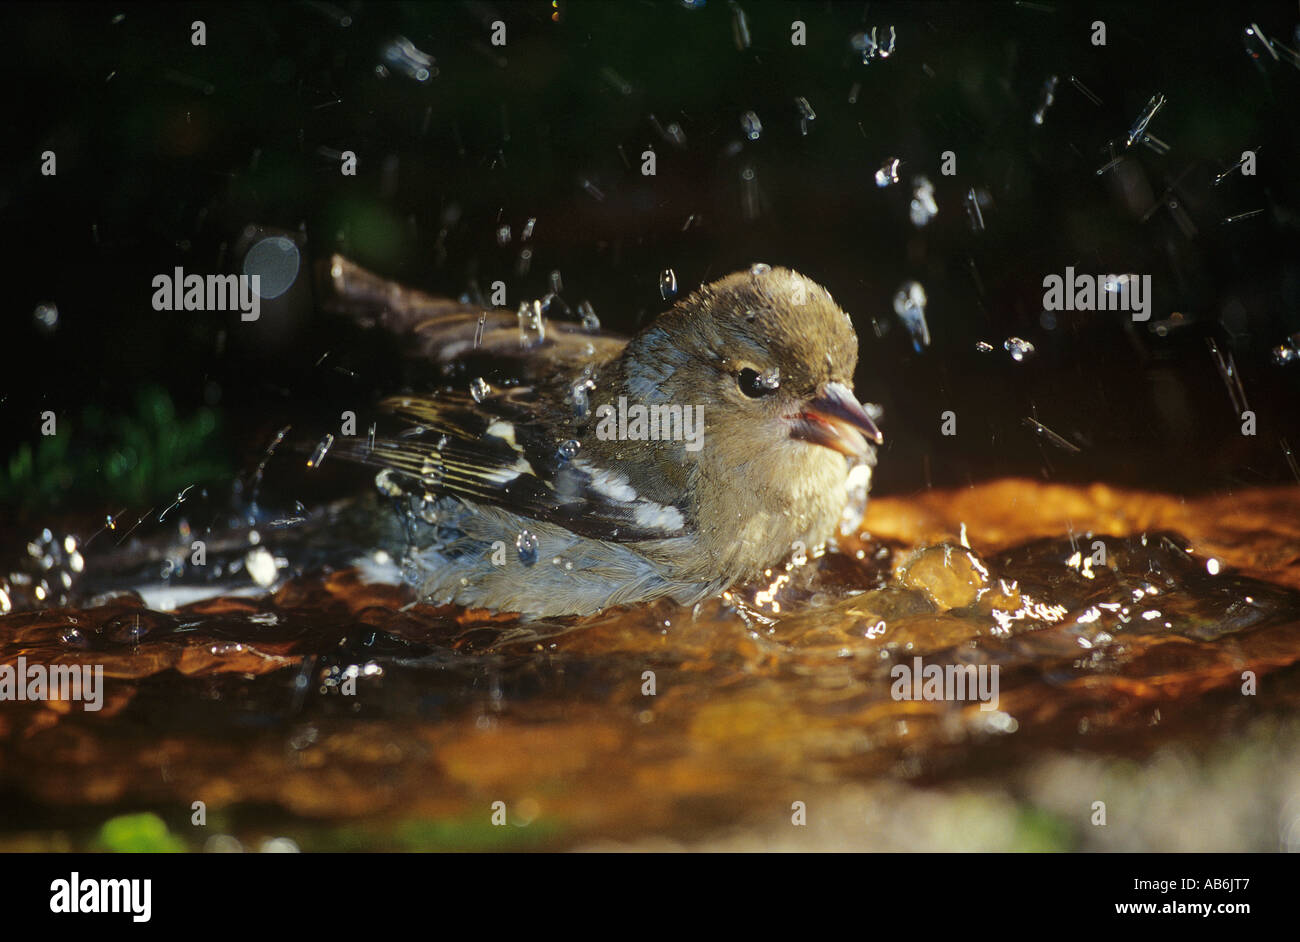 madeira chaffinch in water Fringilla coelebs maderensis - Stock Image